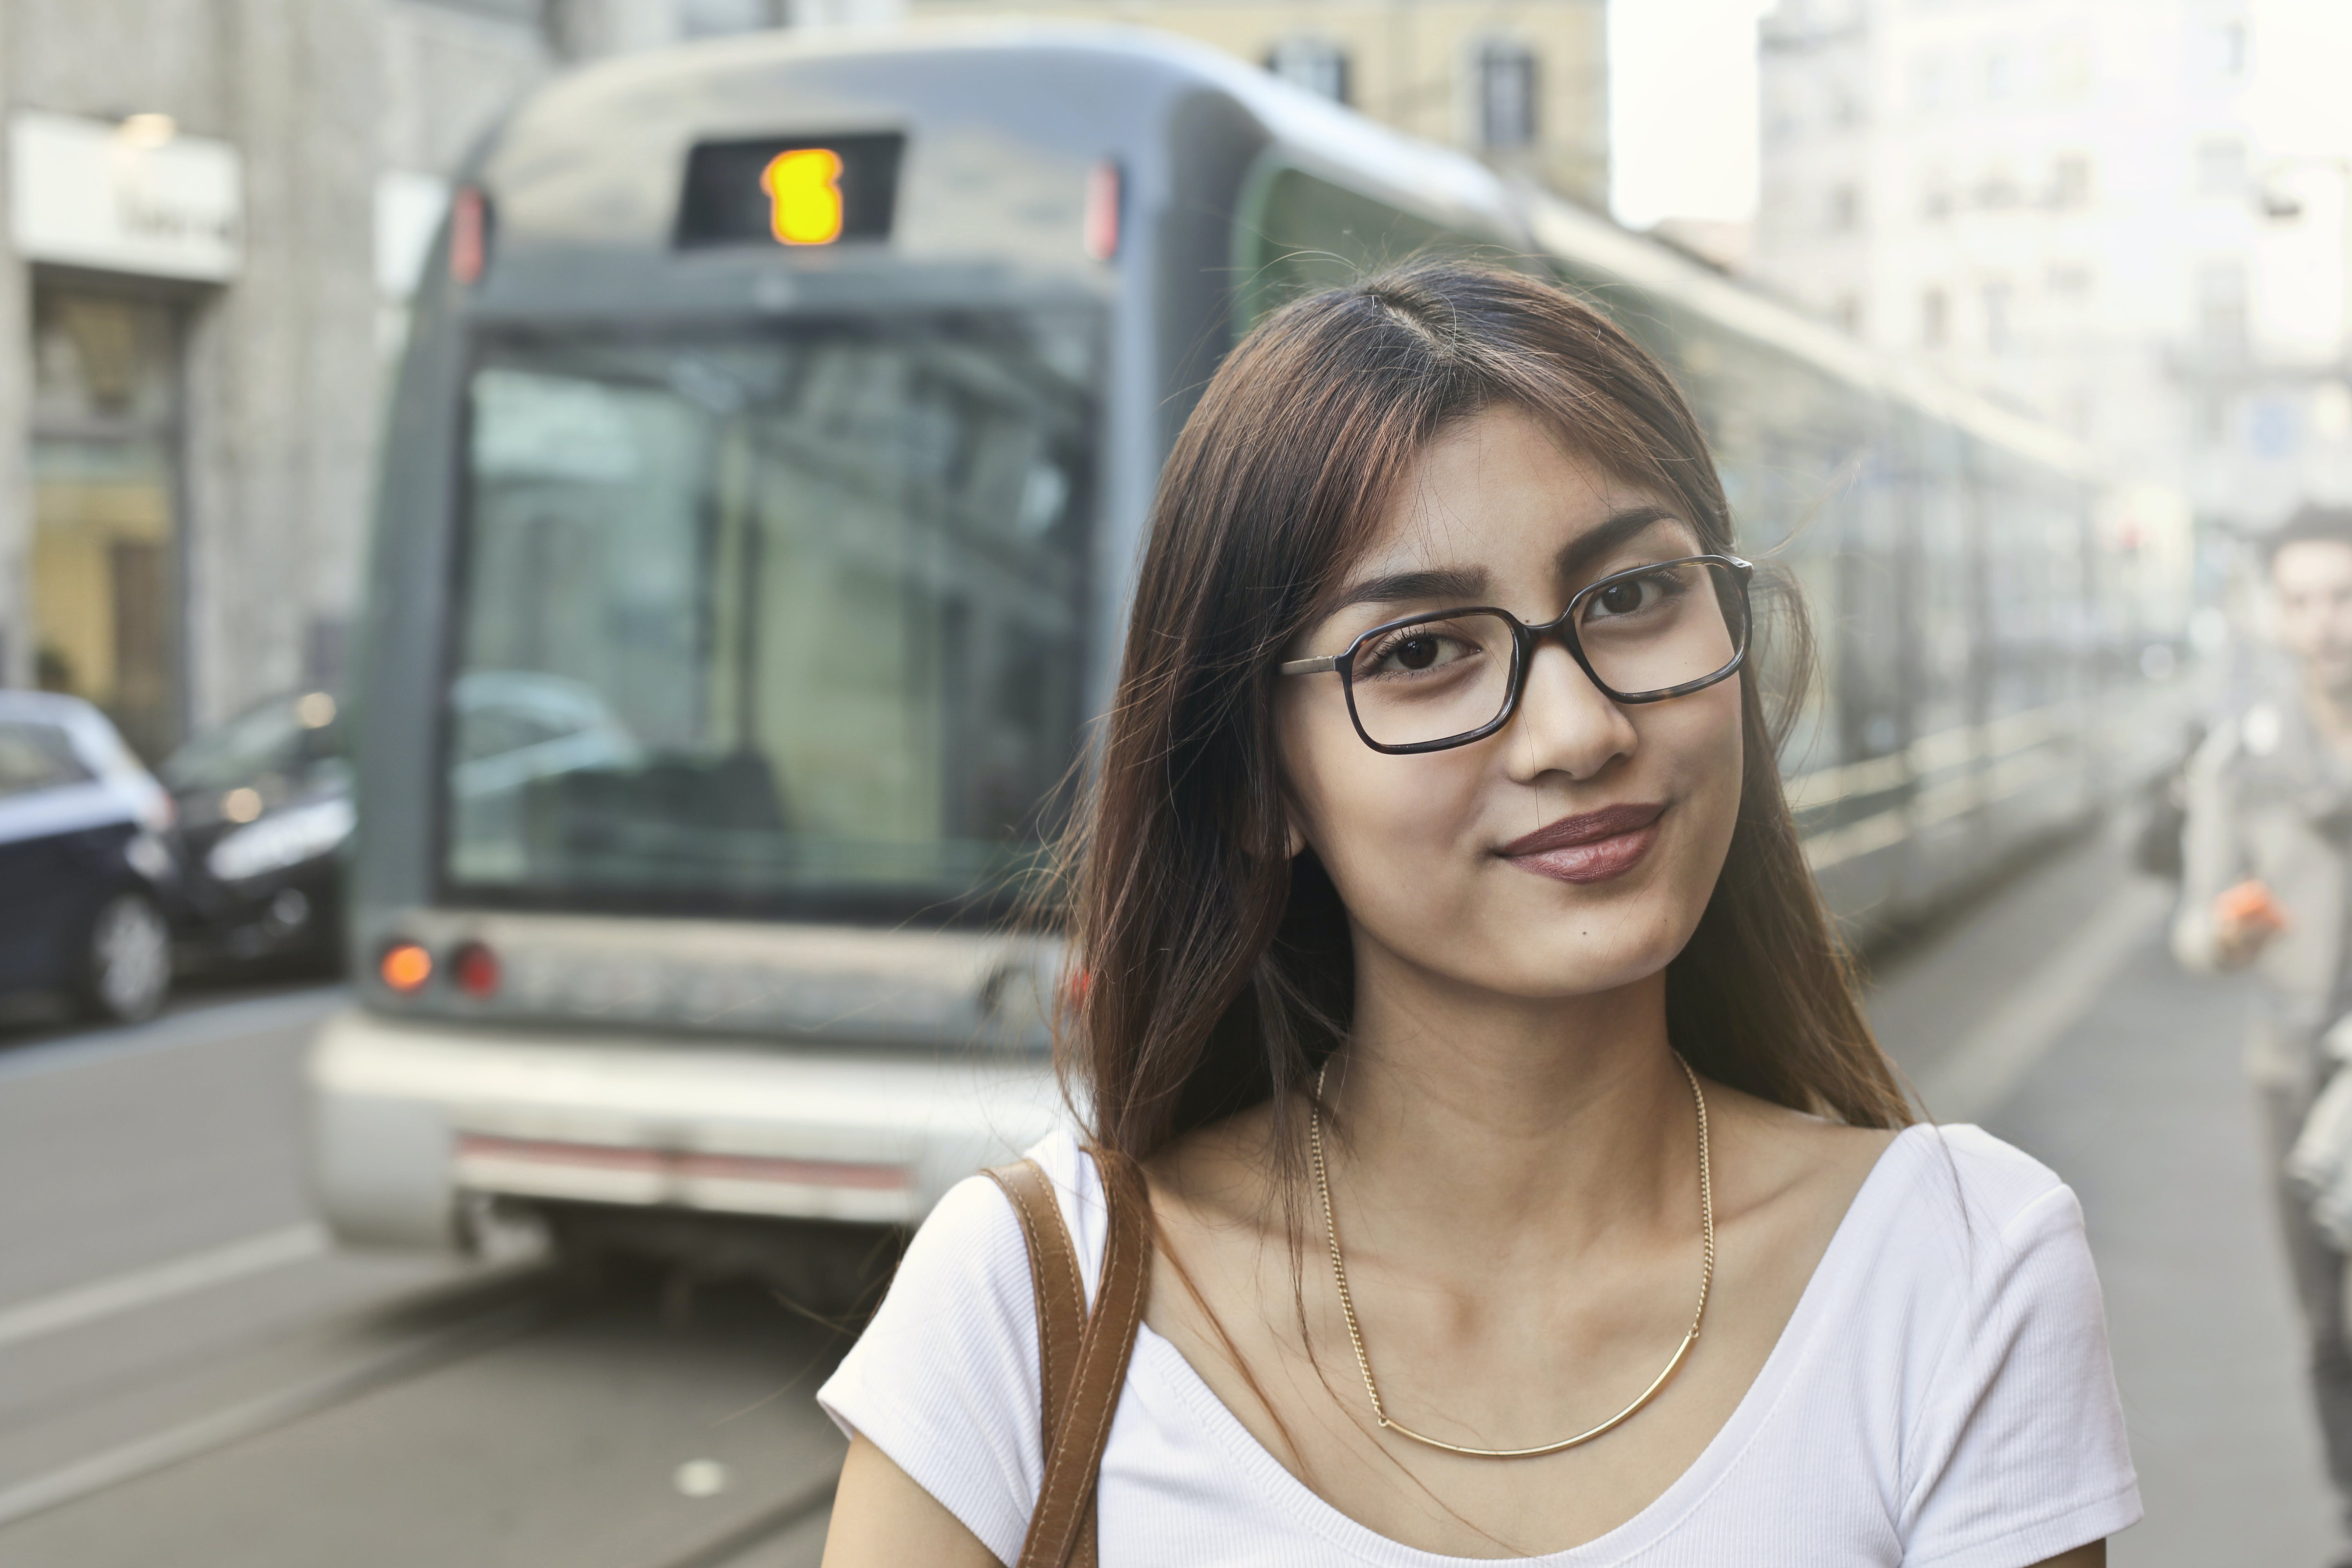 Woman in White Shirt With Eyeglasses Standing Near Train